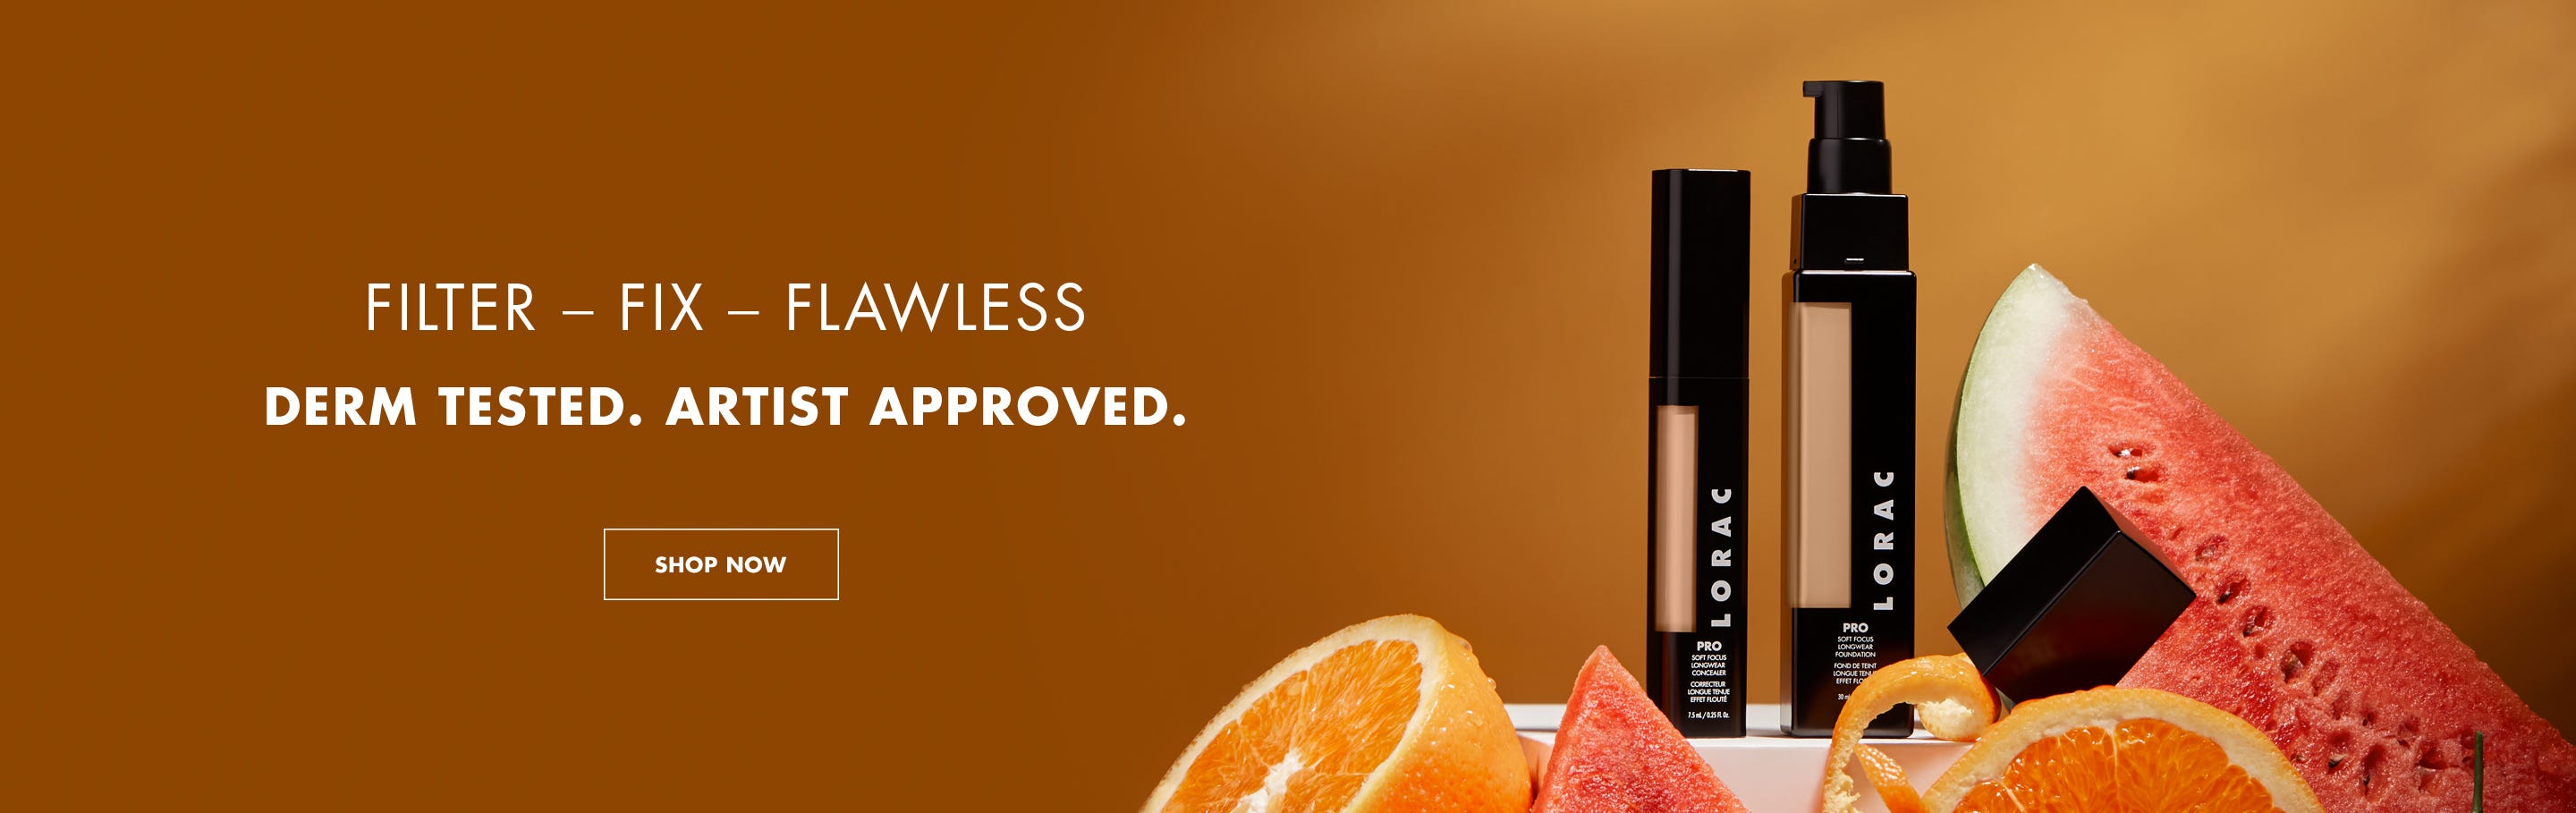 Filter. Fix. Flawless. Derm Tested. Artist Approved.   SHOP NOW